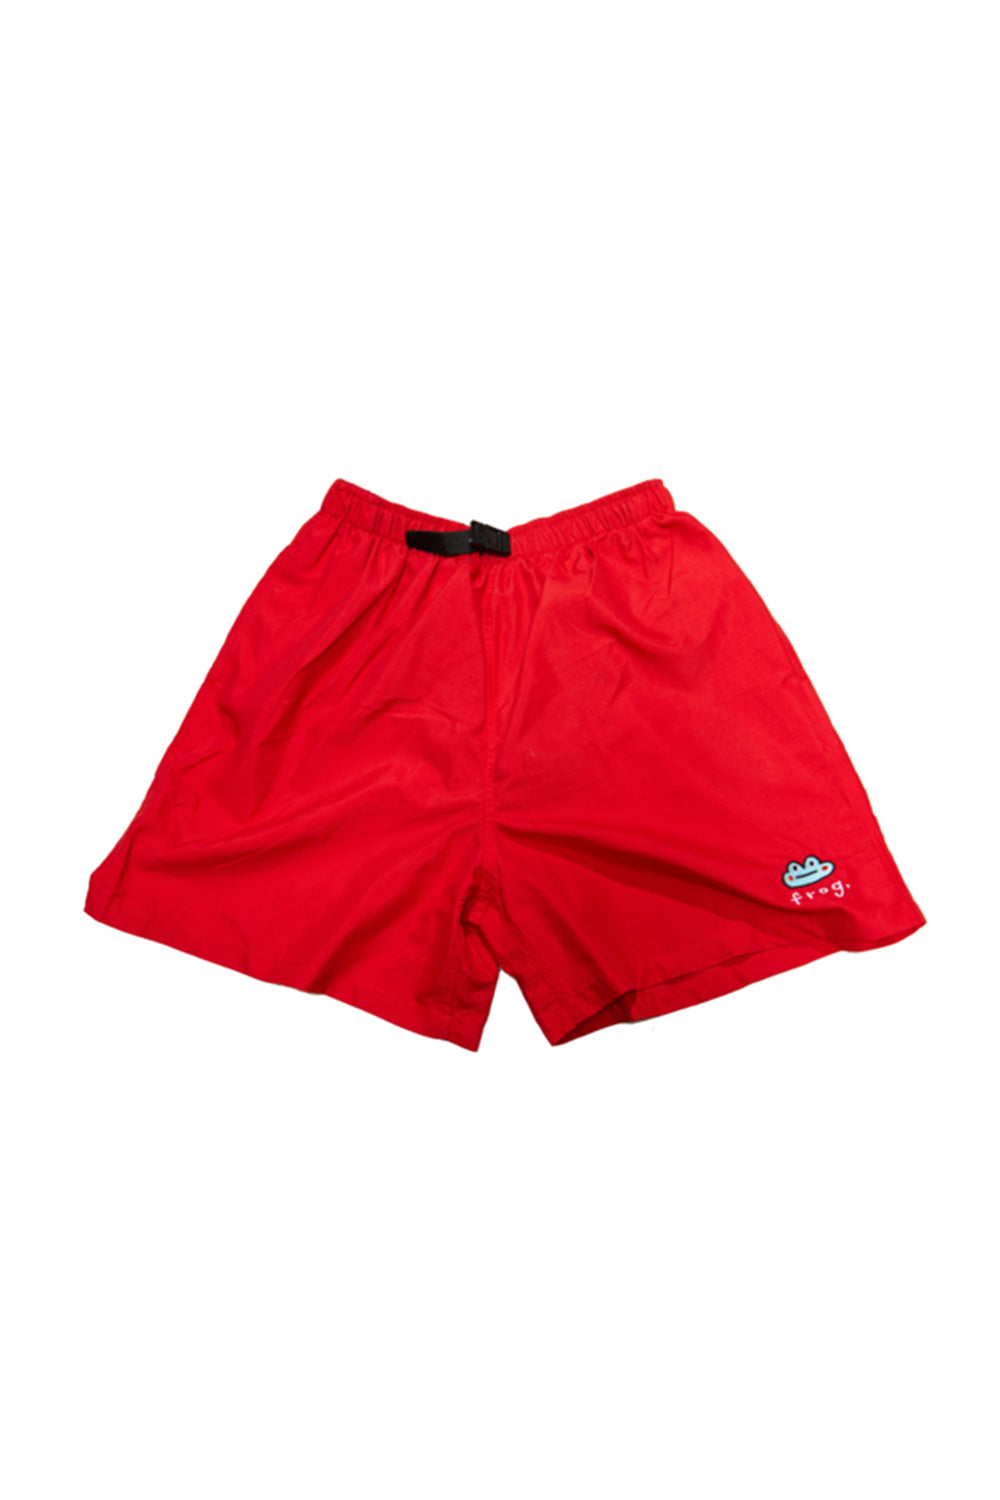 Frog Swim Trunks - Red